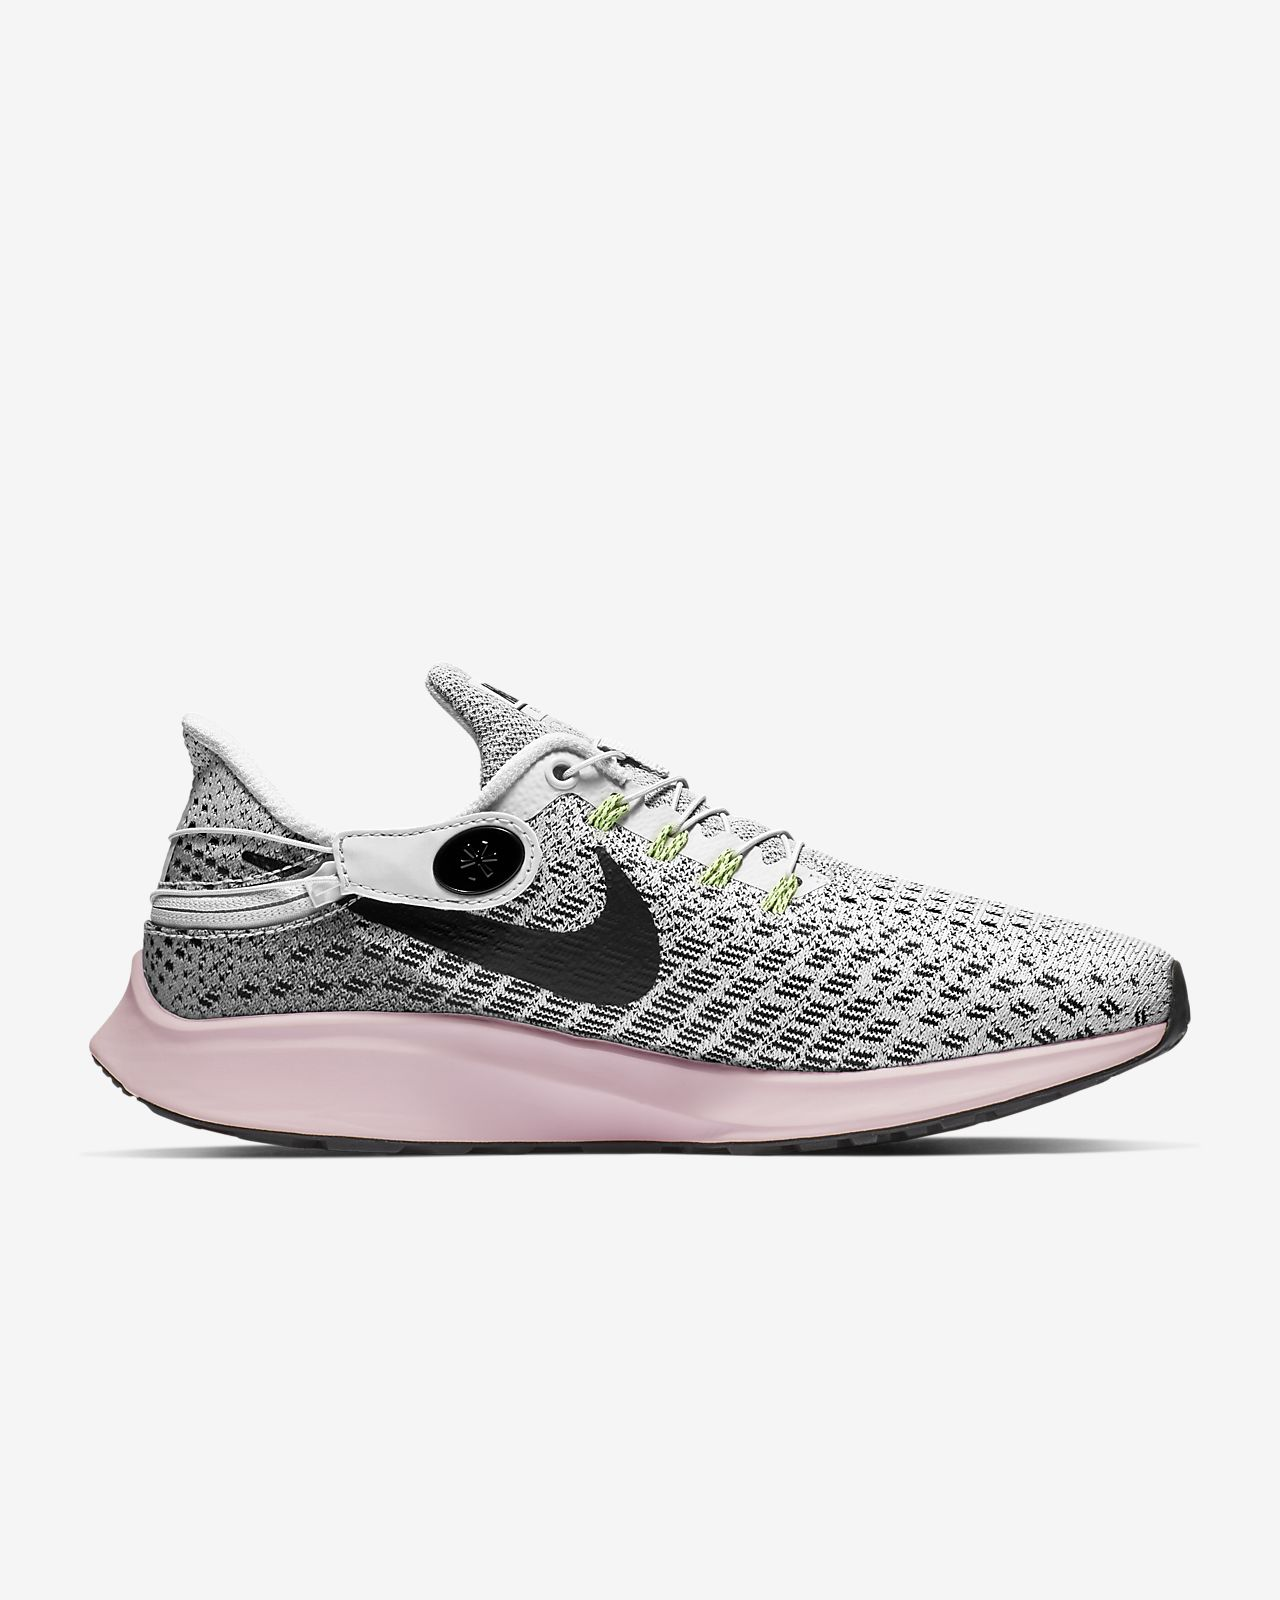 new york 59c94 ab9cd Damskie buty do biegania Nike Air Zoom Pegasus 35 FlyEase. Nike.com PL